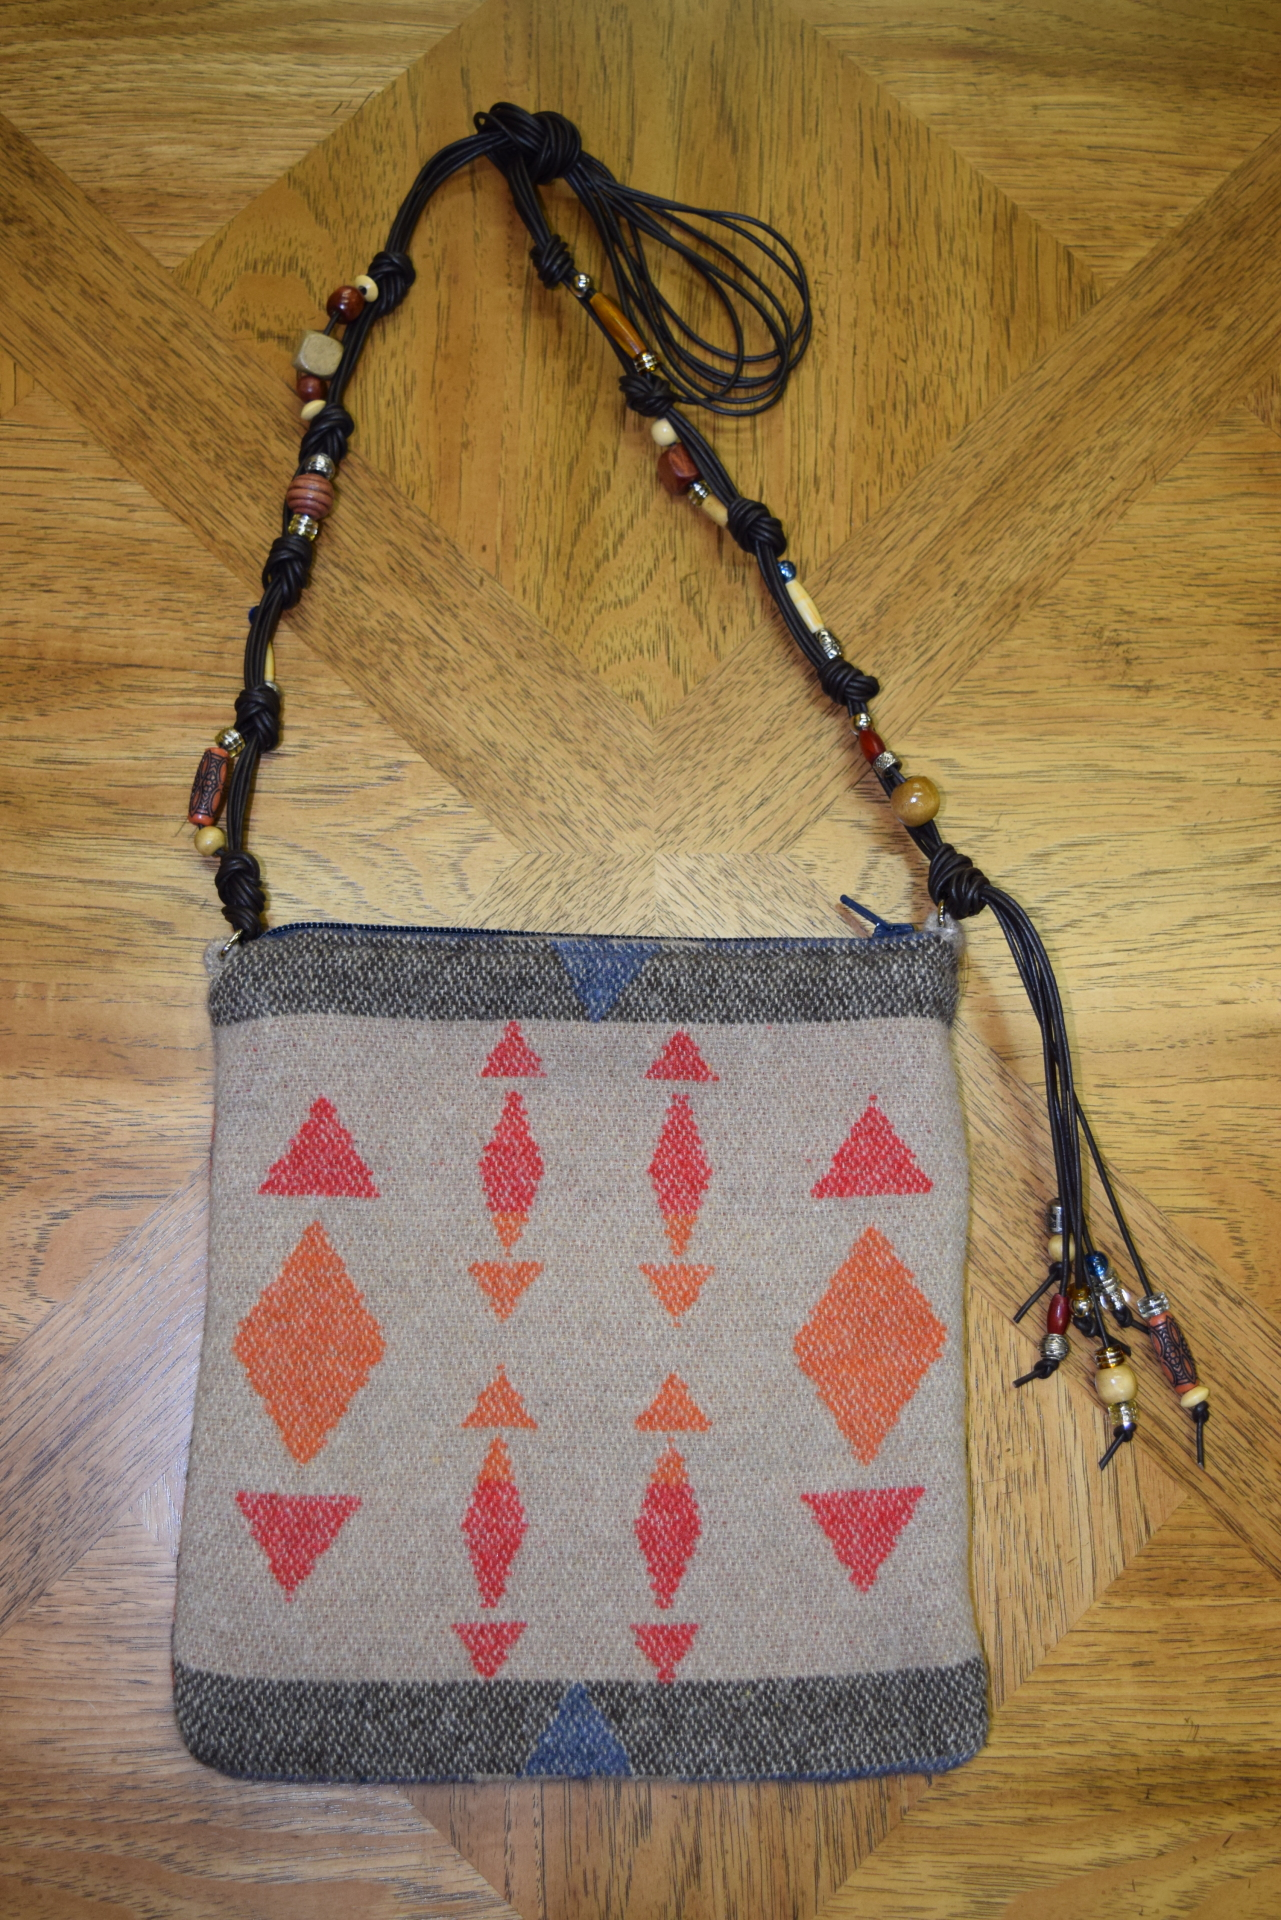 #B05ZS - SAHARA ZUNI BEADED LEATHER STRAP BAG - $129.95